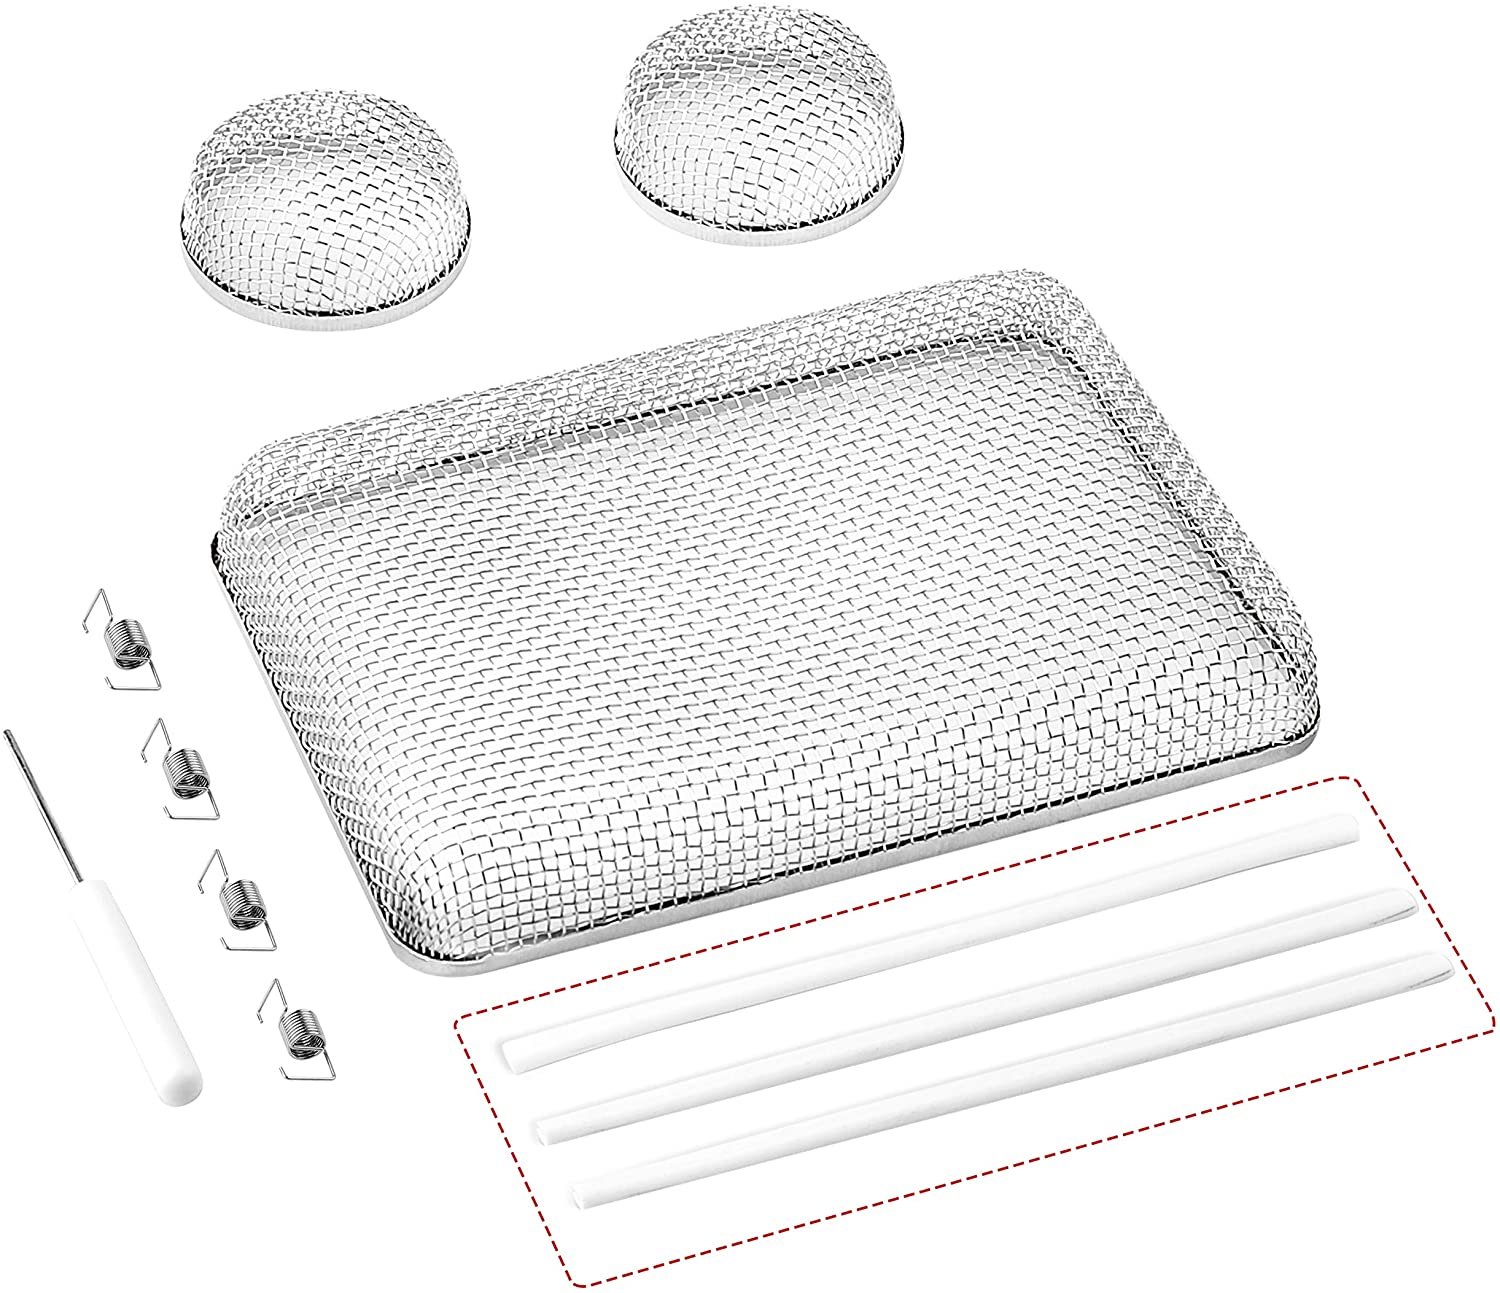 RVGUARD RV Flying Insect Screen, Stainless Steel Mesh RV Furnace Vent Cover with Installation Tool and Silicone Rubber, 2.8 x 1.3 Inch for Furnace Fitting, 8.5 x 6 x 1.3 Inch for Water Heater